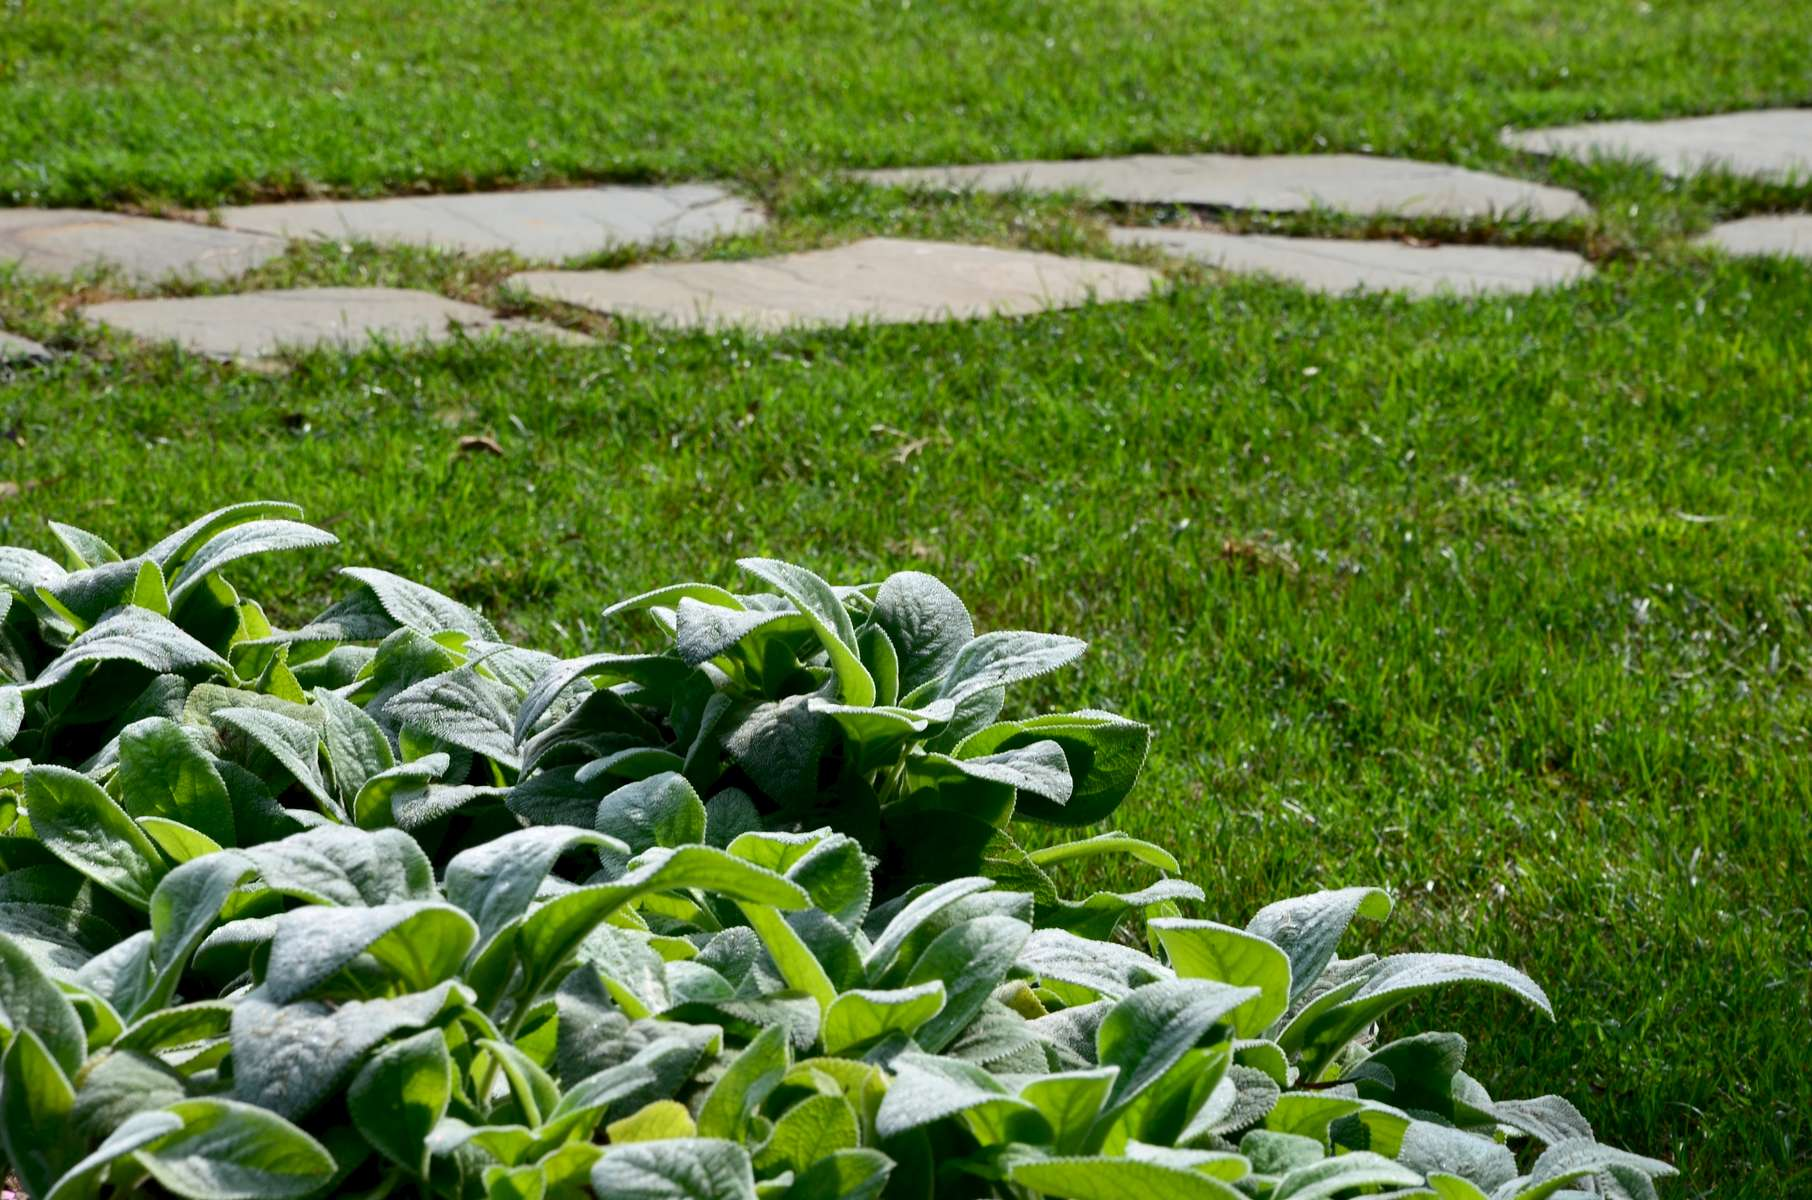 Gentle lamb's ear keeps watch over visitors entering the pool area from the enchanting path.